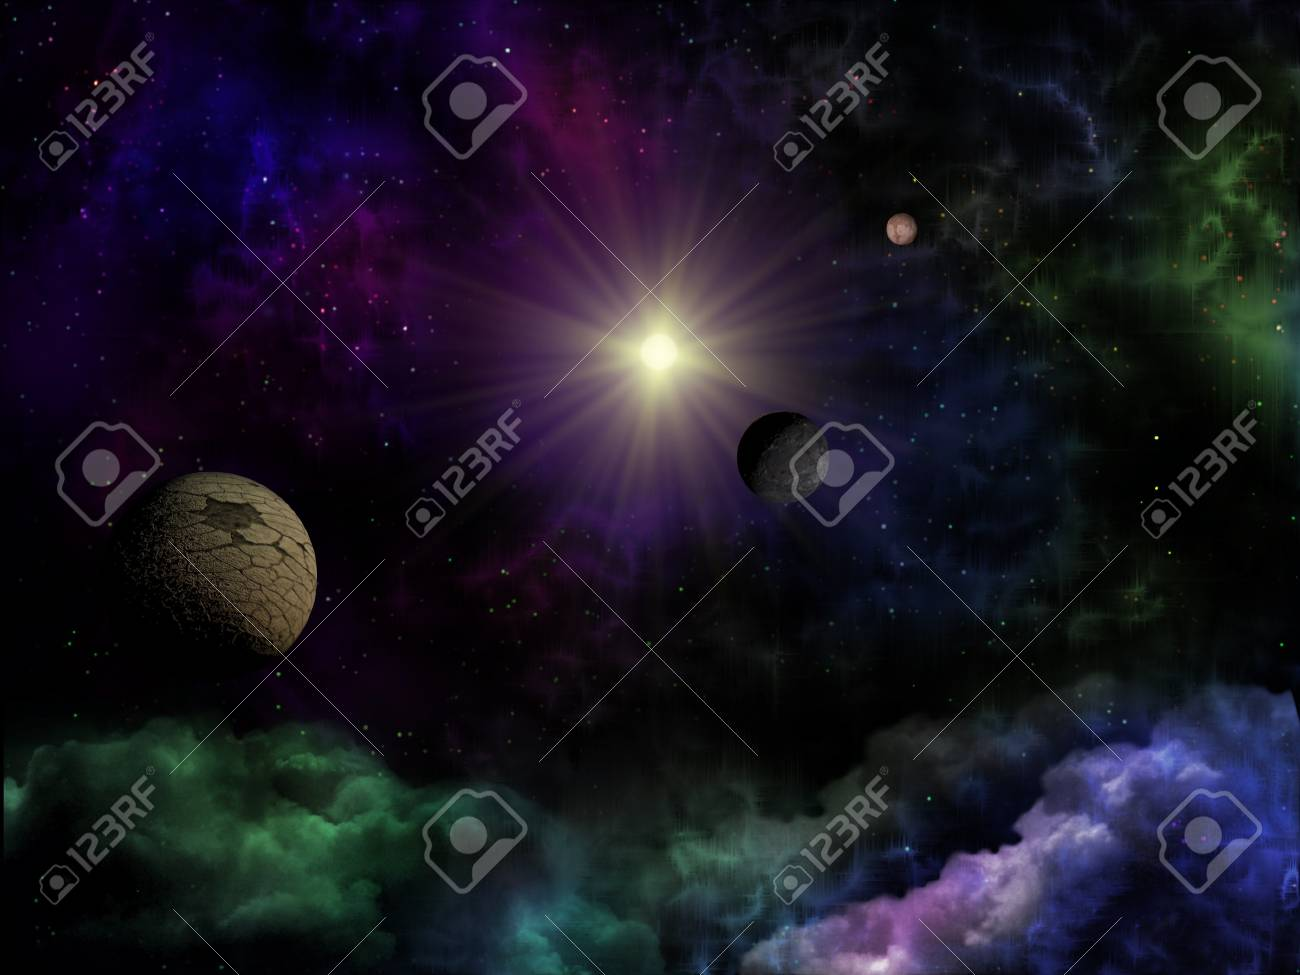 Space fantasy of planet, star and clouds Stock Photo - 10554987